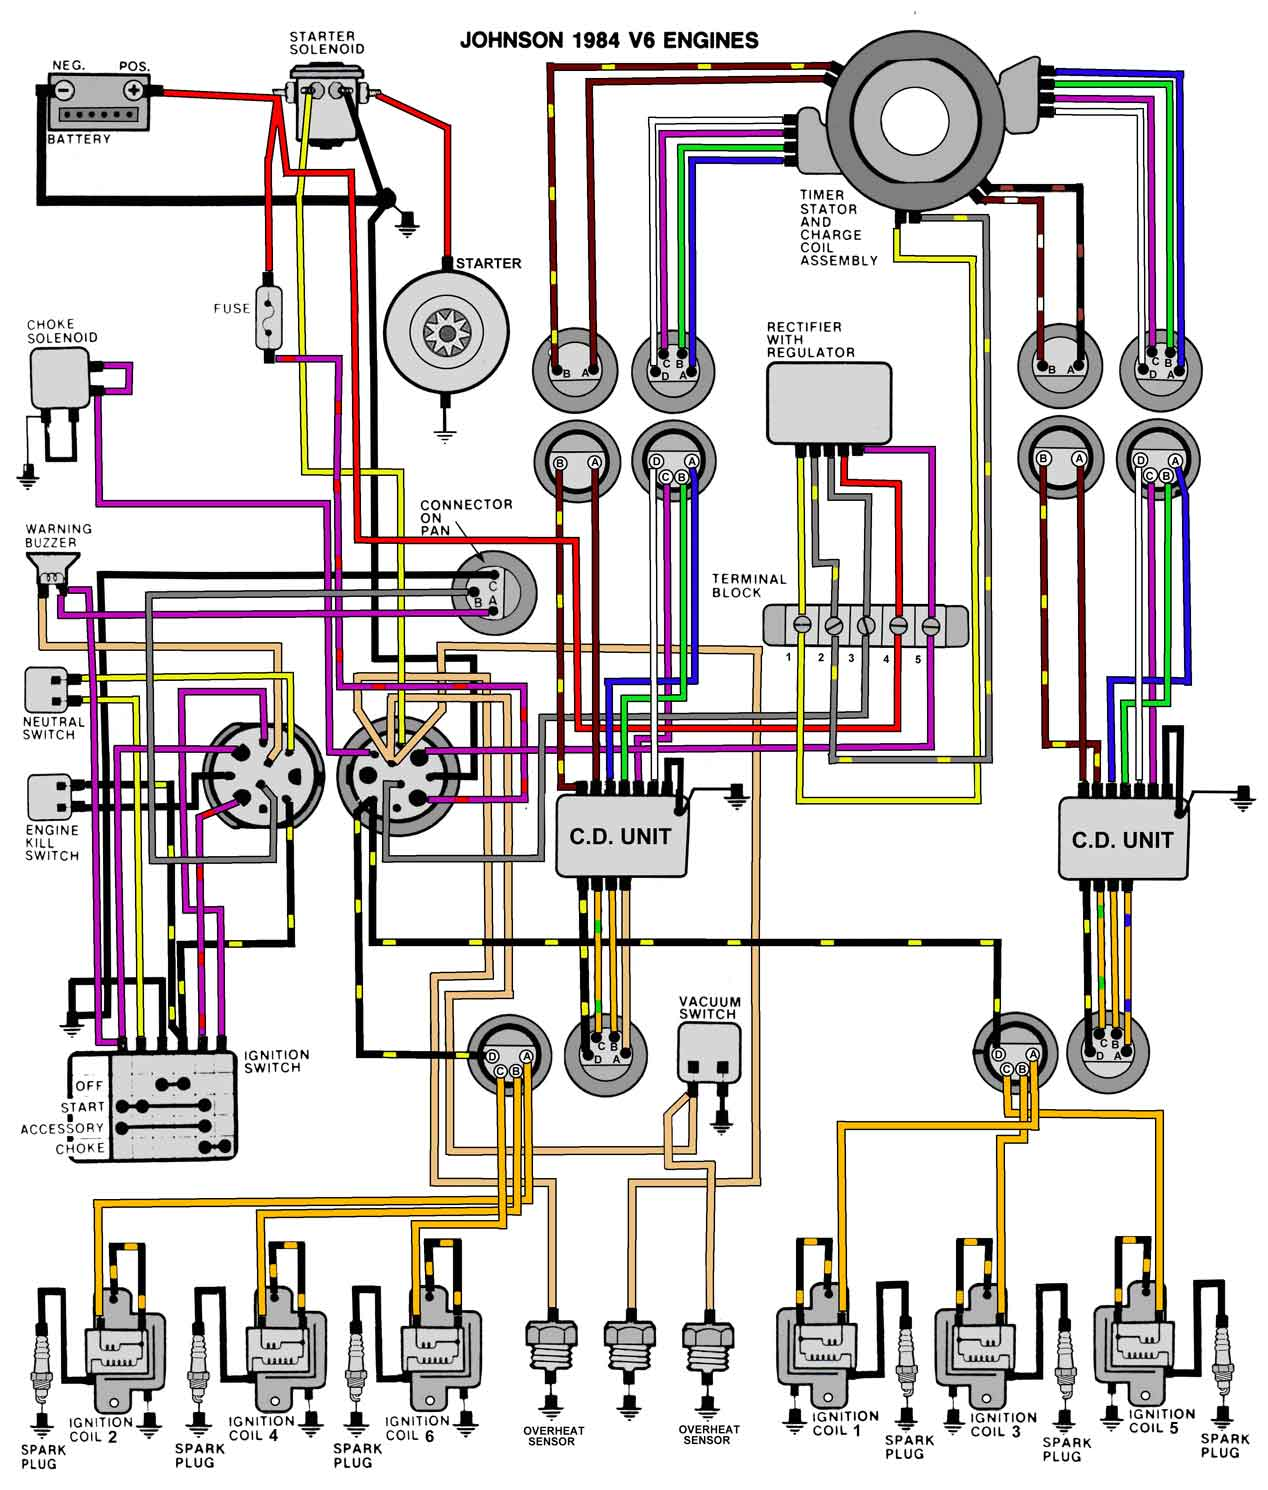 84_V6 boat motor wiring diagram small boat wiring diagram \u2022 wiring Boat Ignition Switch Wiring Diagram at mifinder.co